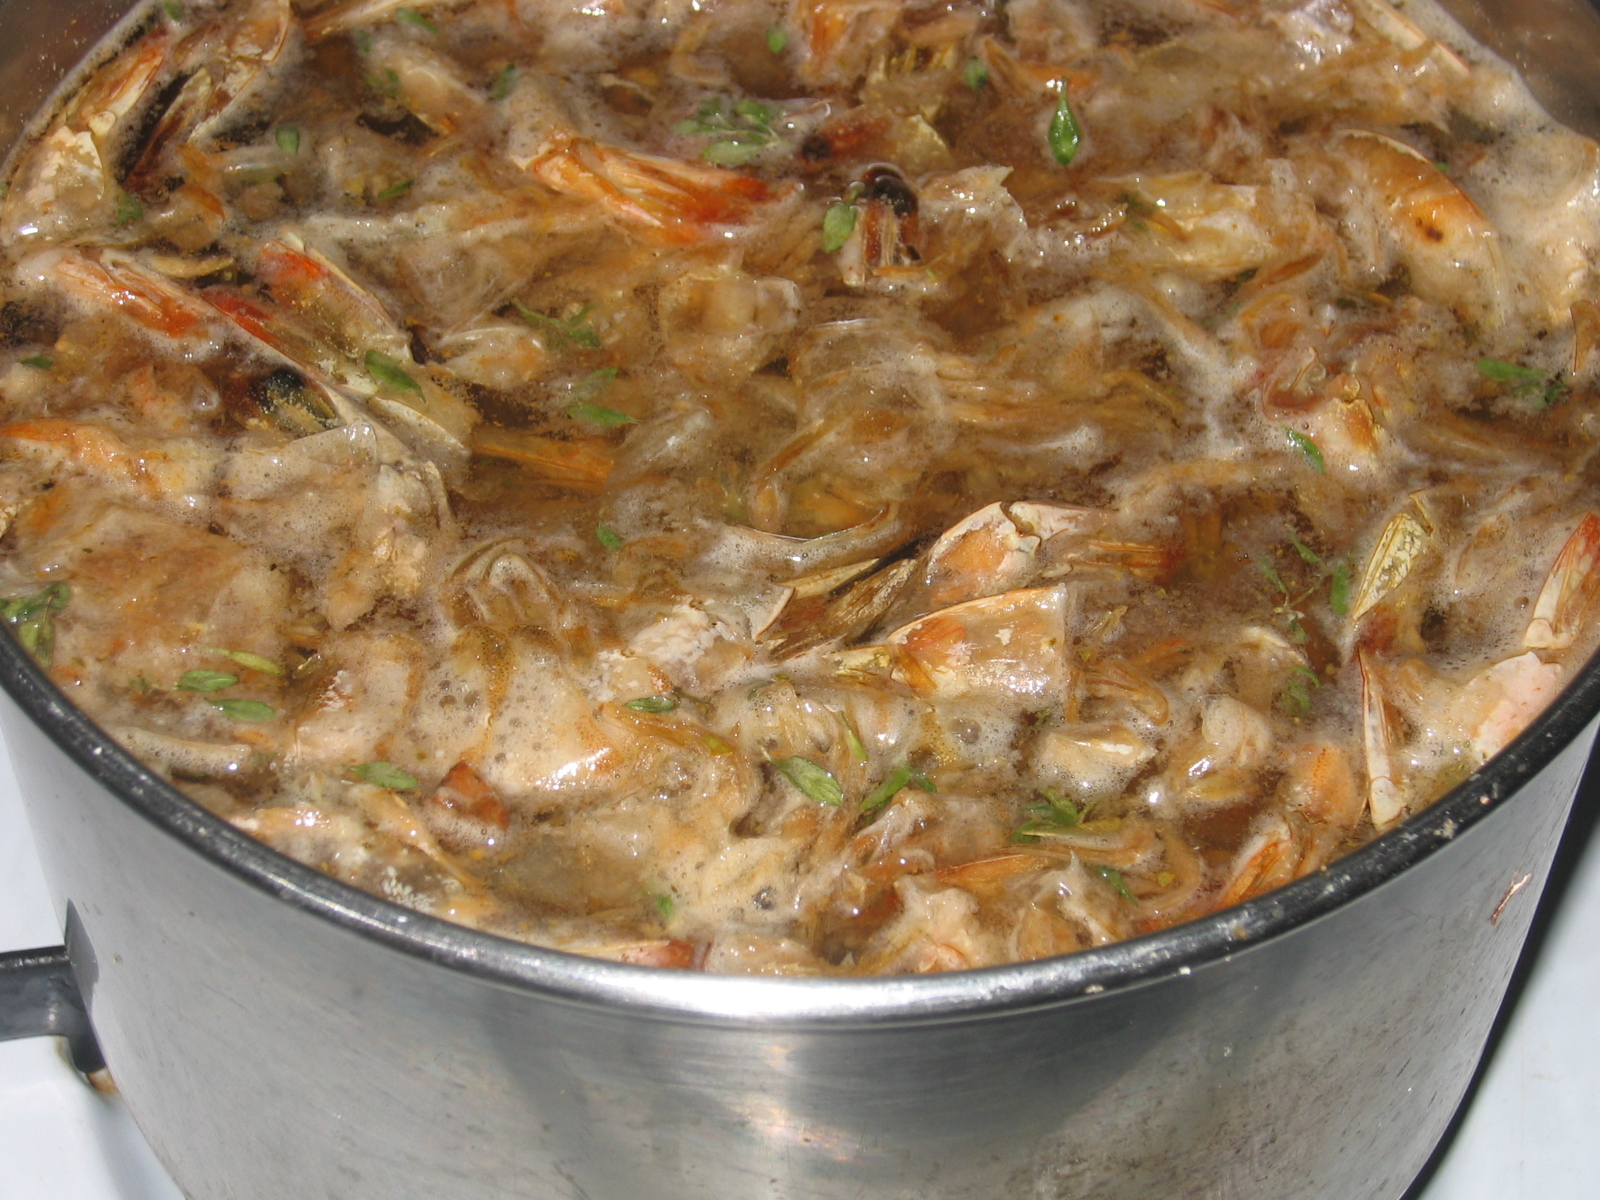 Shrimp stock for okra for shrimp and andouille sausage gumbo recipe